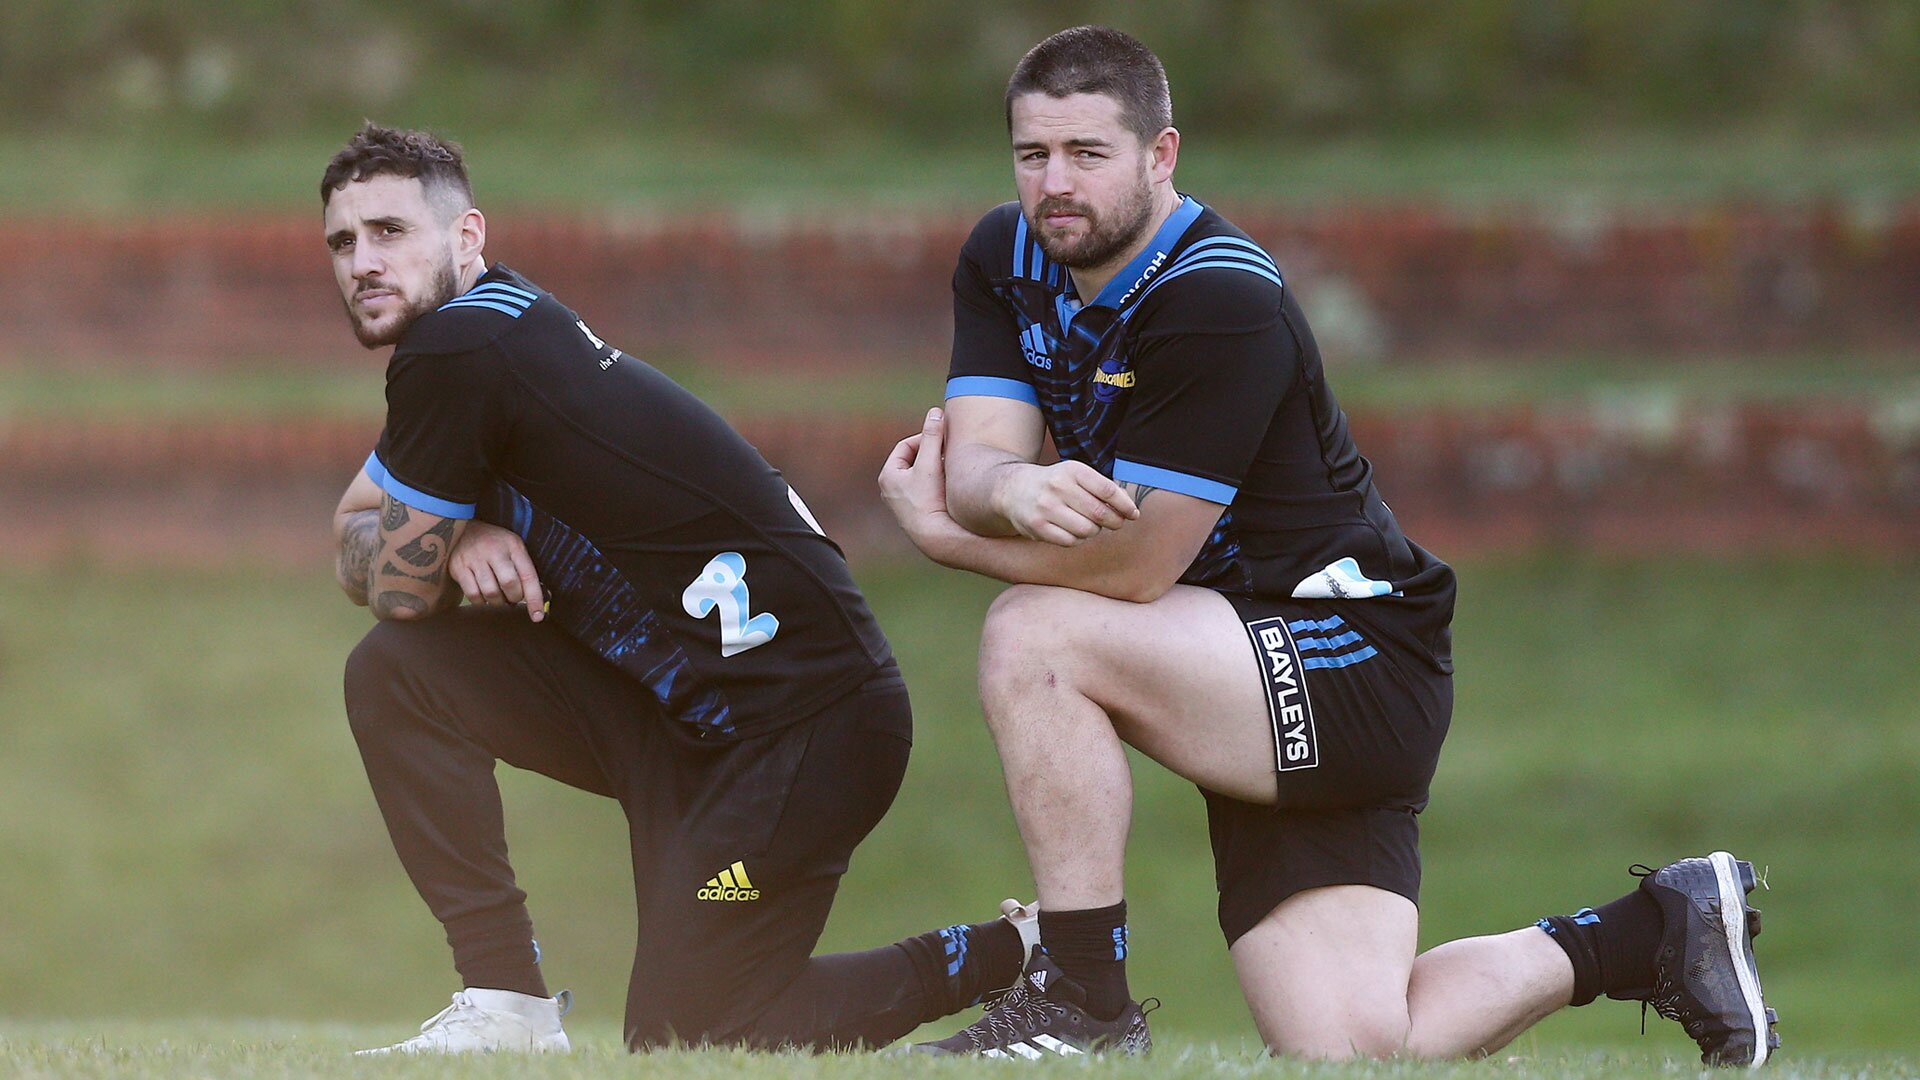 TJ Perenara and Dane Coles team up to lead the Hurricanes